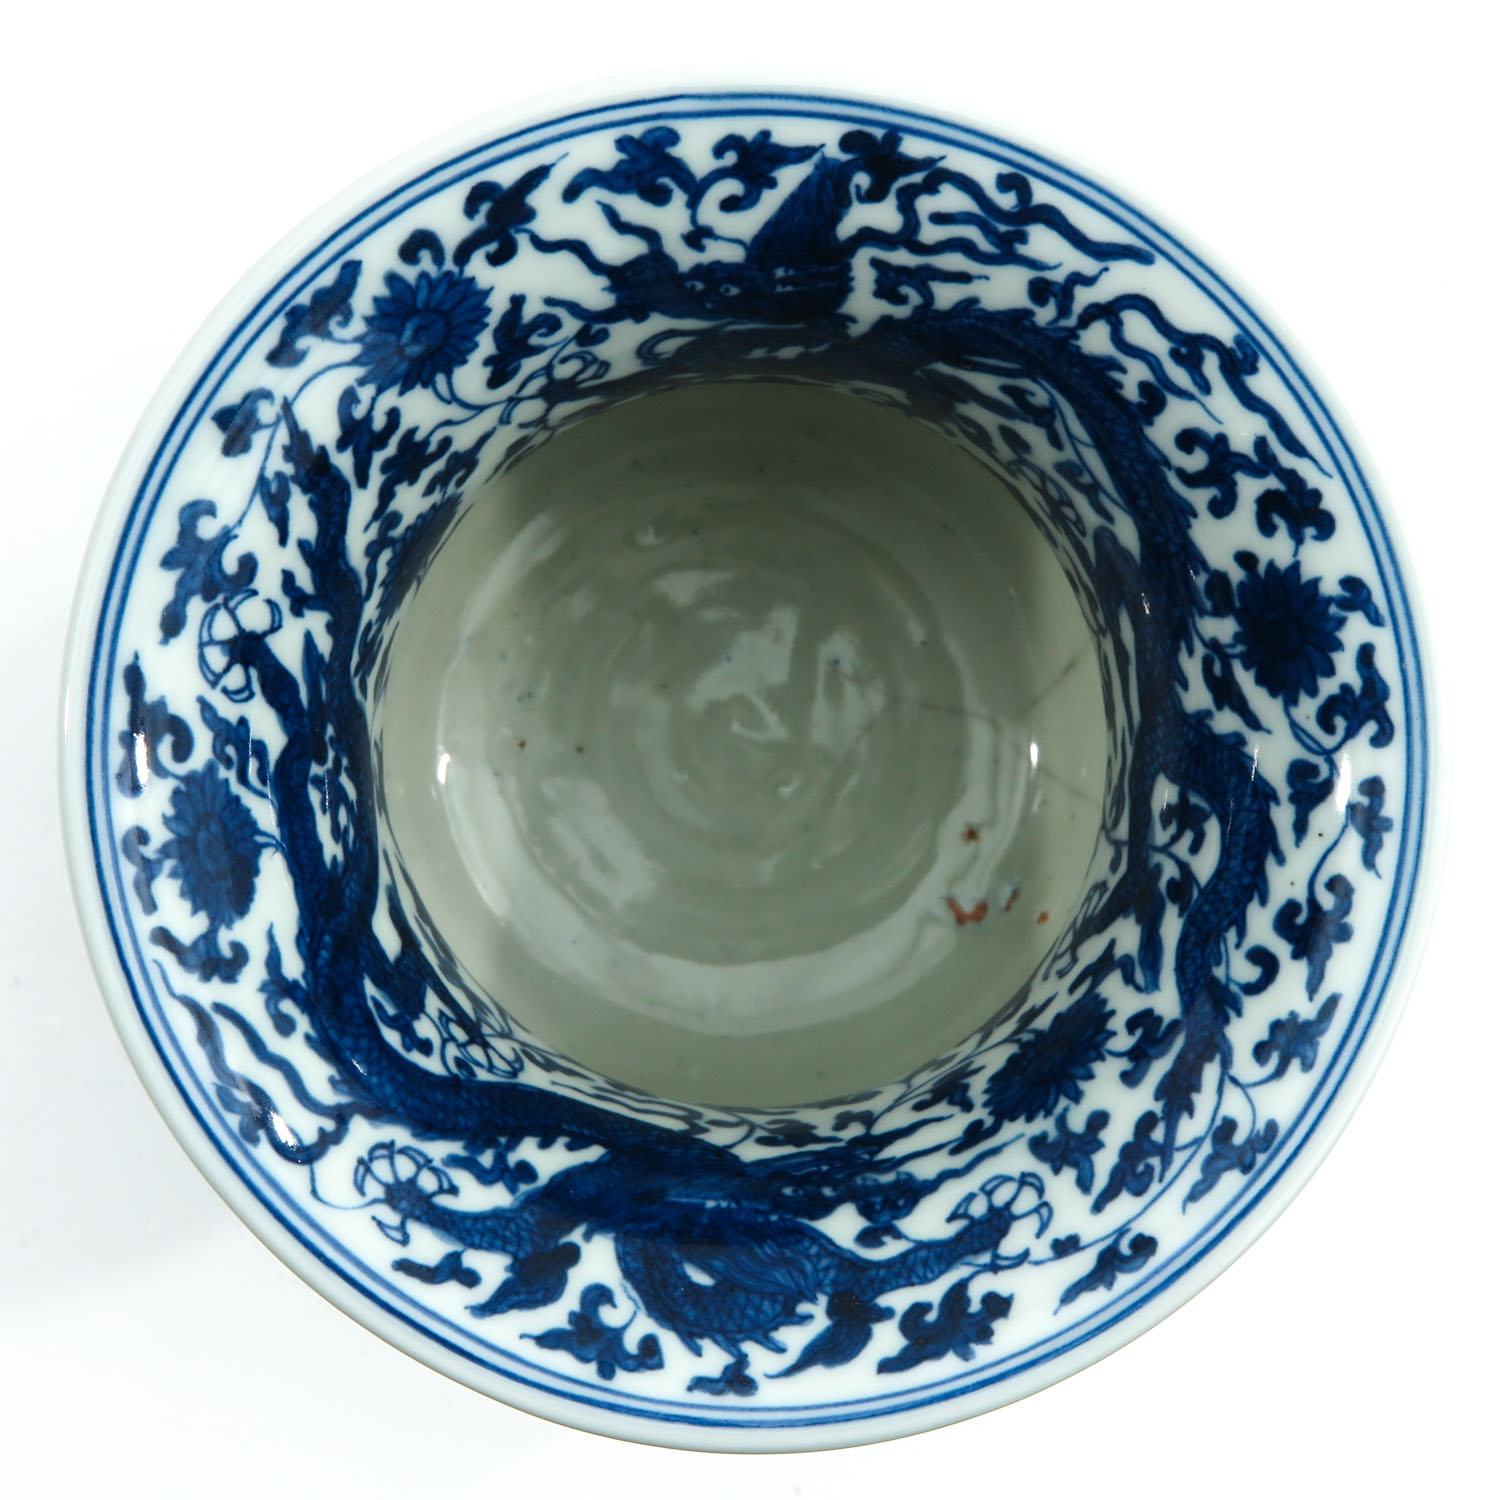 A Blue and White Vase - Image 5 of 9